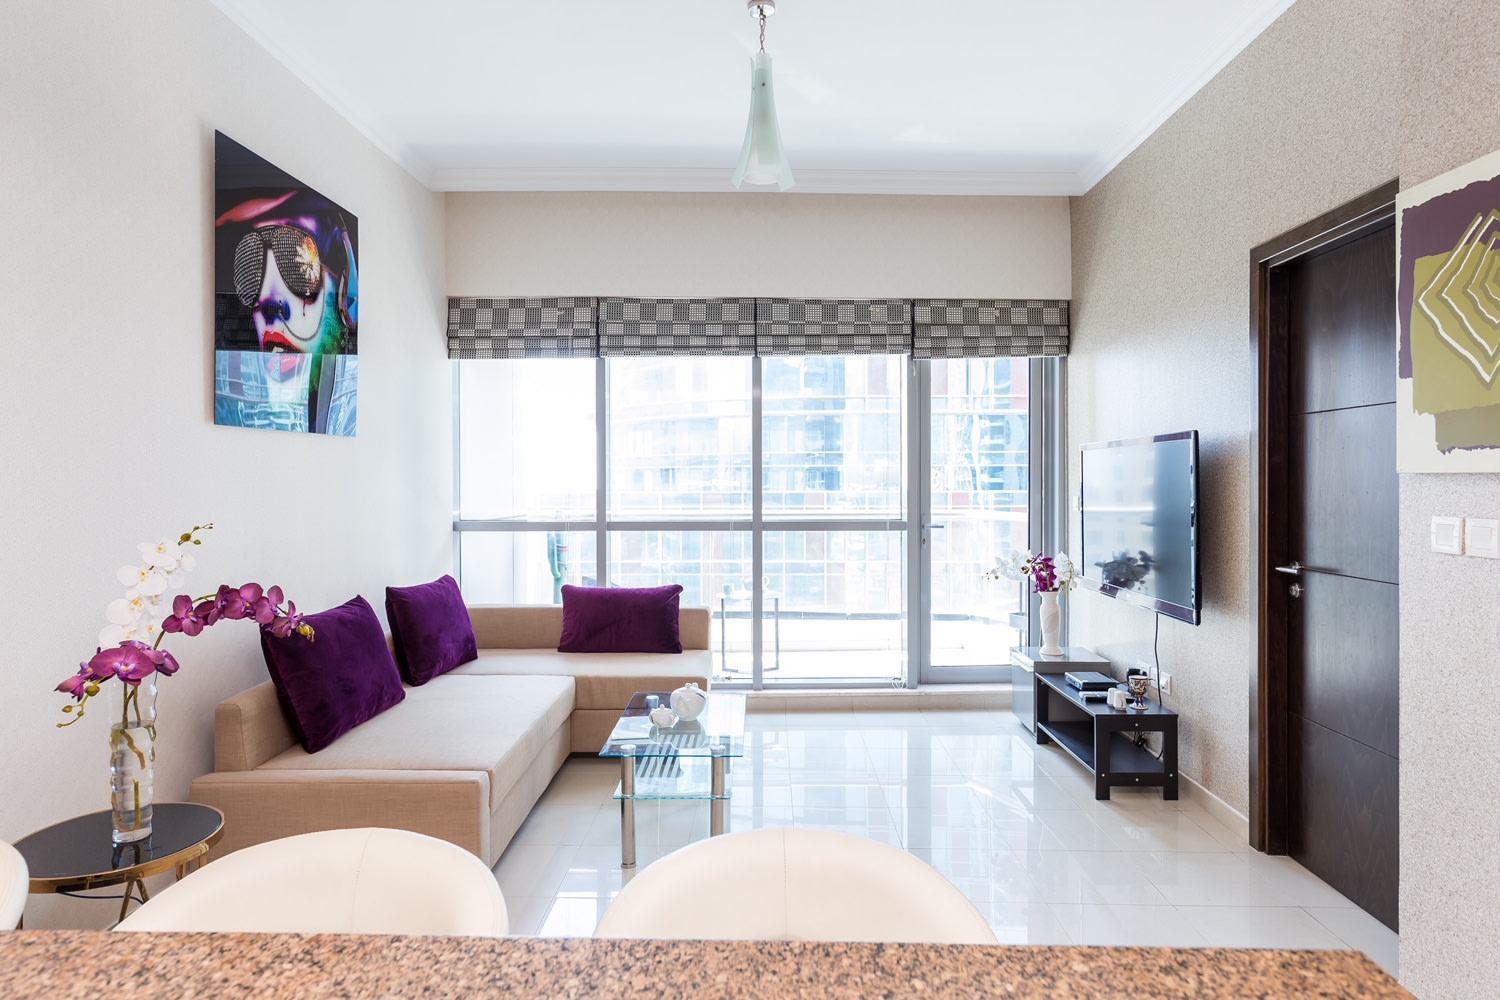 Fully Furnished 1 Bedroom Priced To Sell